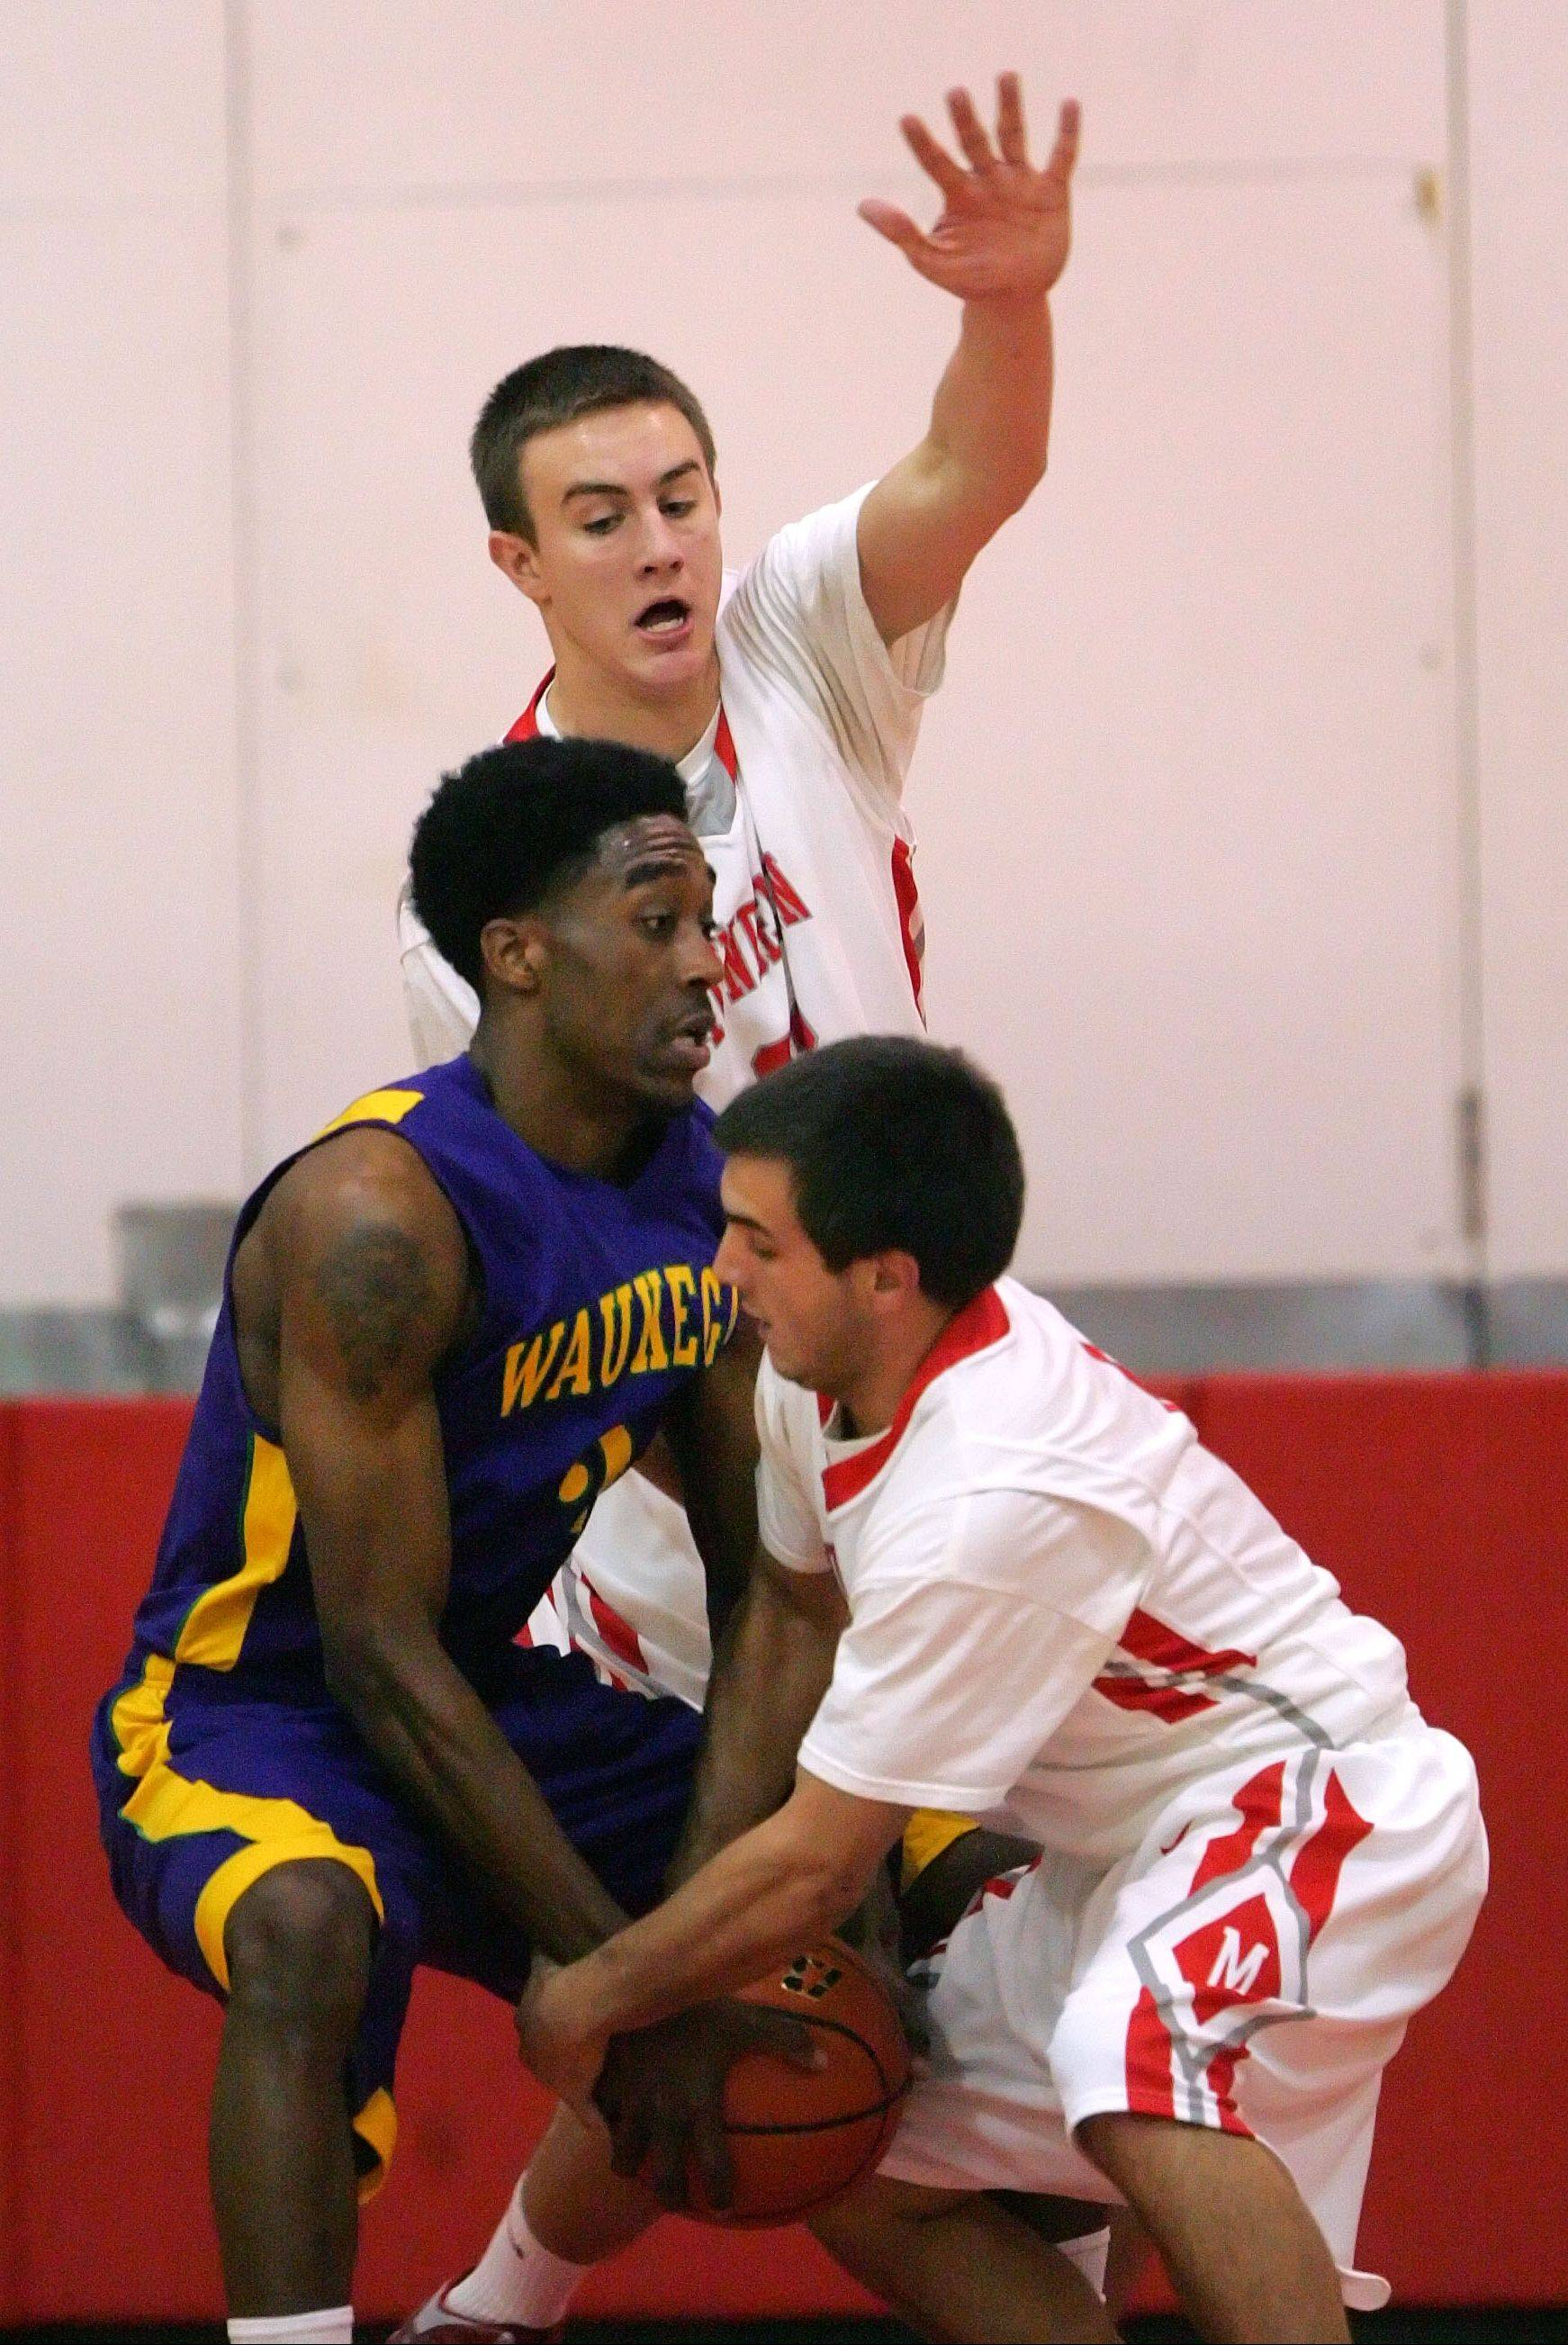 Mundelein's Sean O'Brien, back, and Thomas Gandolfi apply some tough defense against Waukegan's Cornell Fort on Friday night at Mundelein.